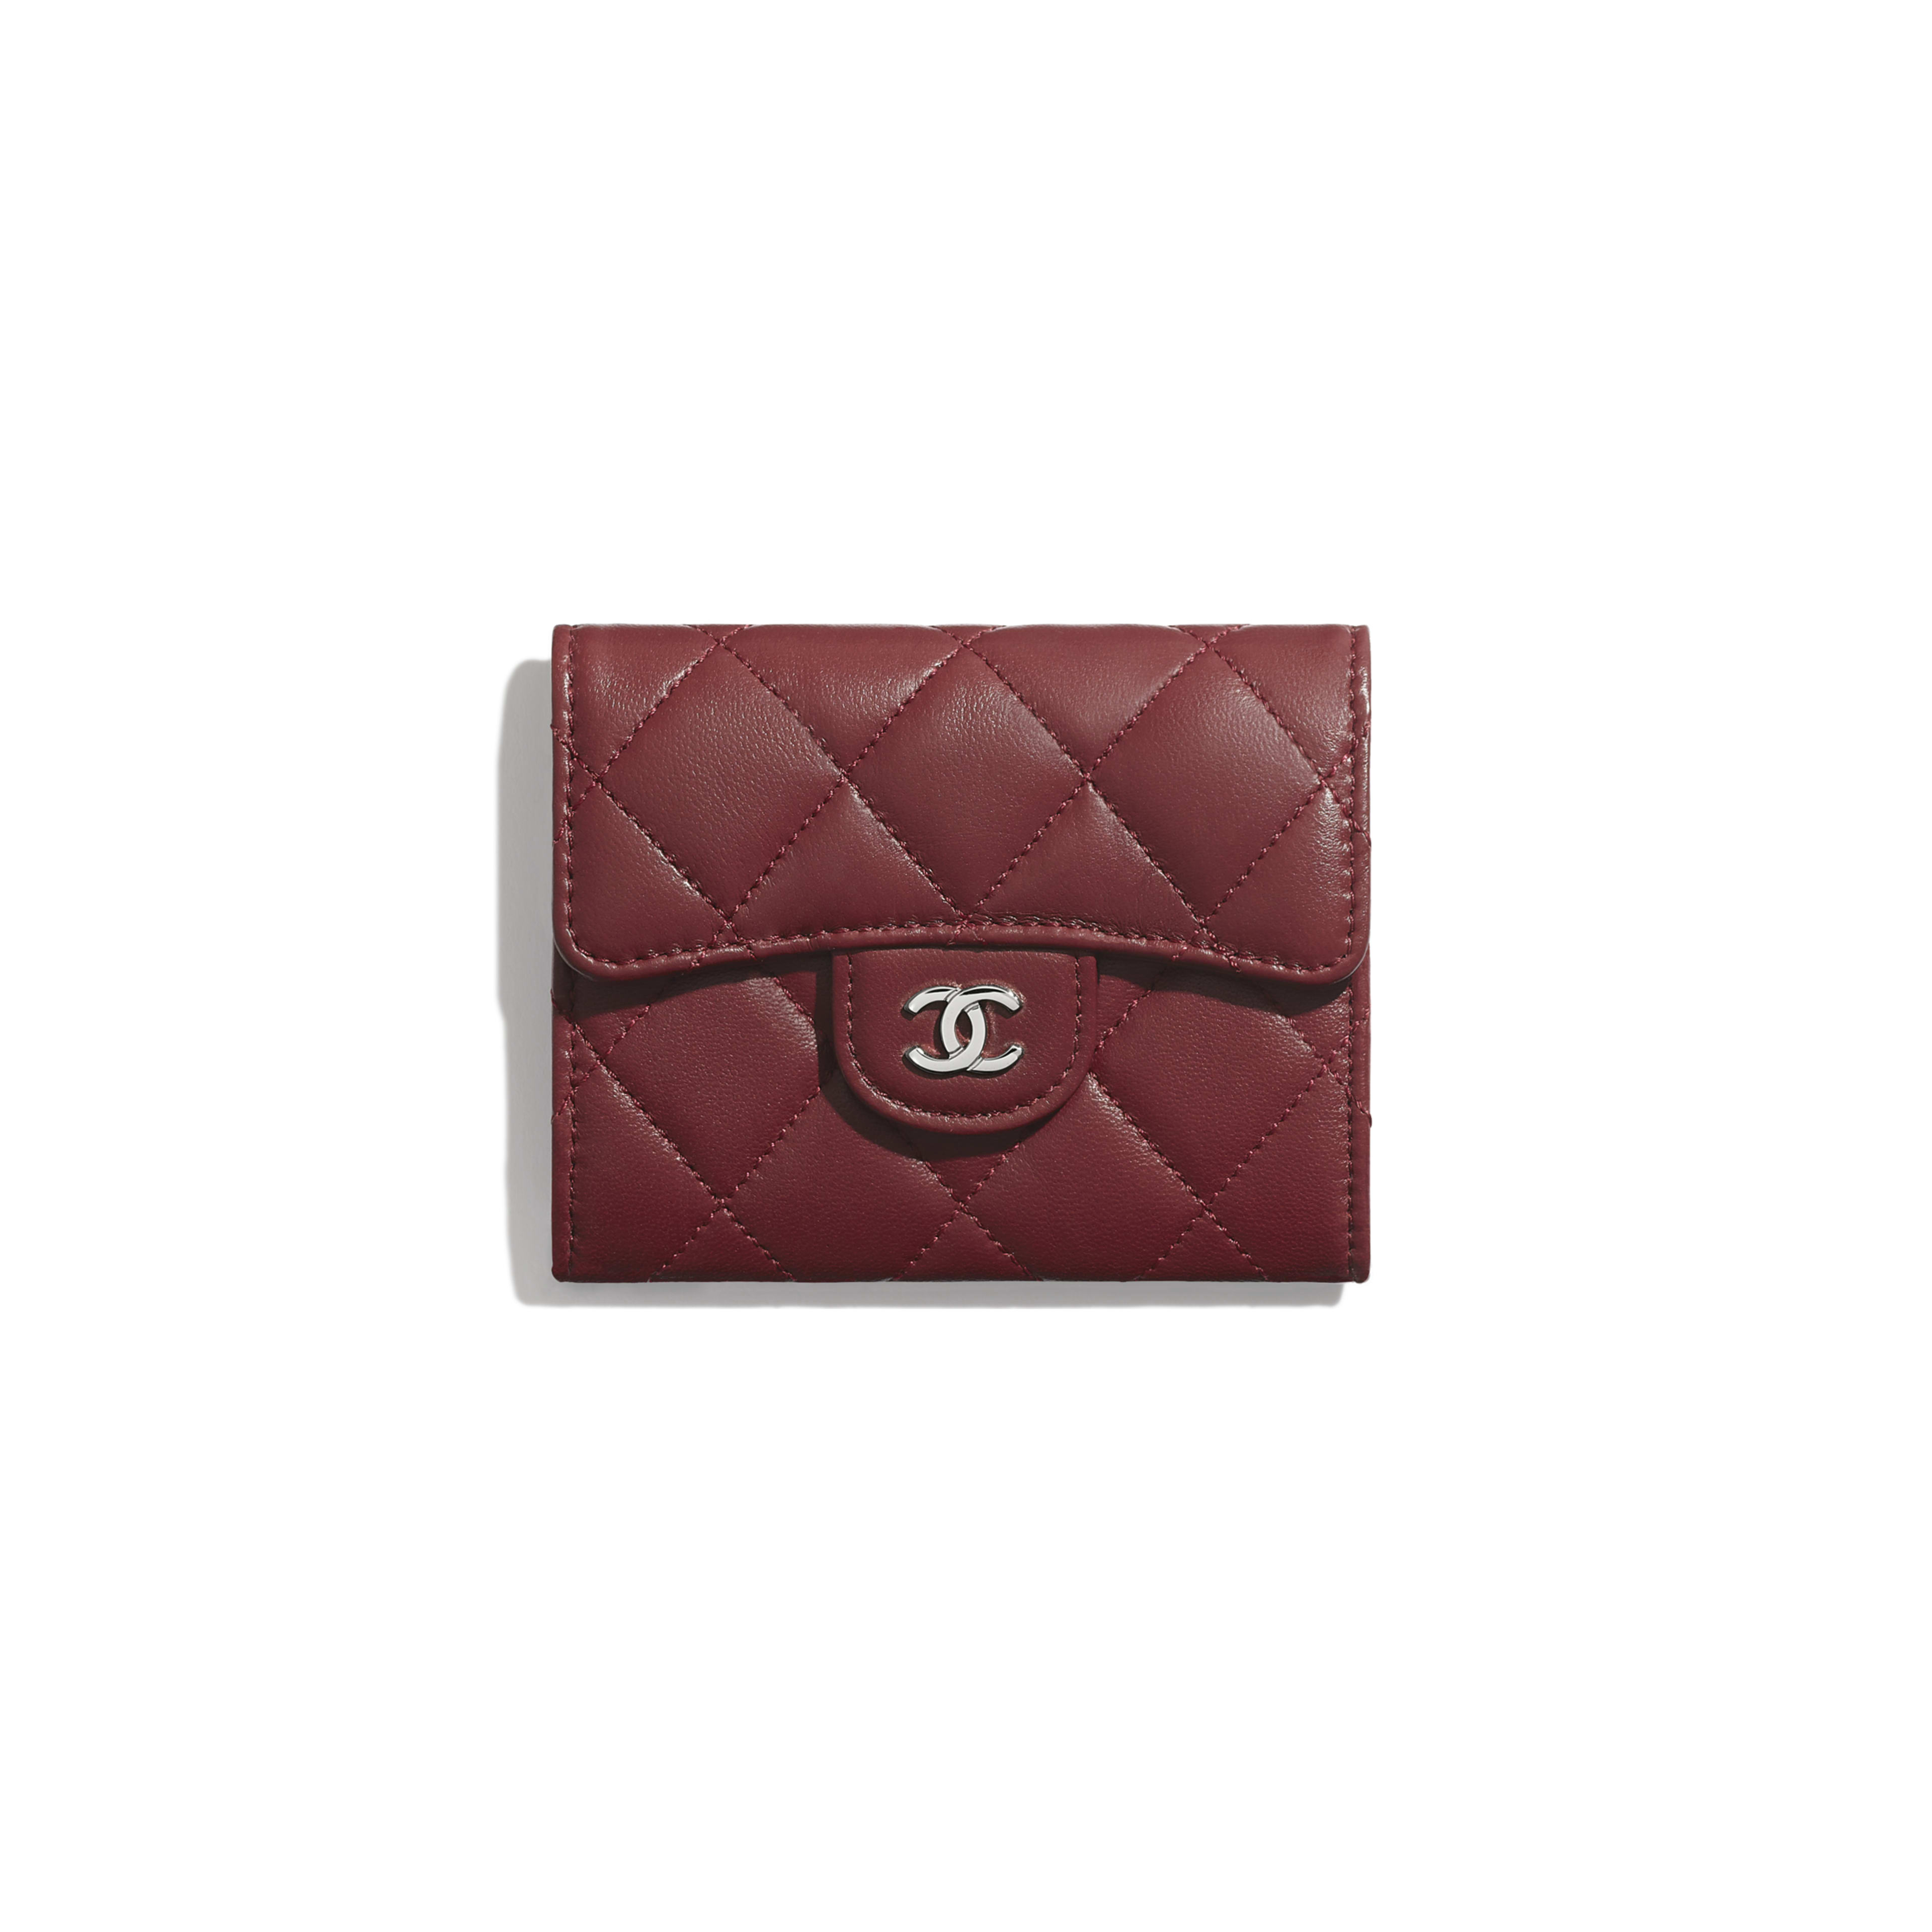 Classic Flap Coin Purse - Burgundy - Lambskin - Default view - see full sized version